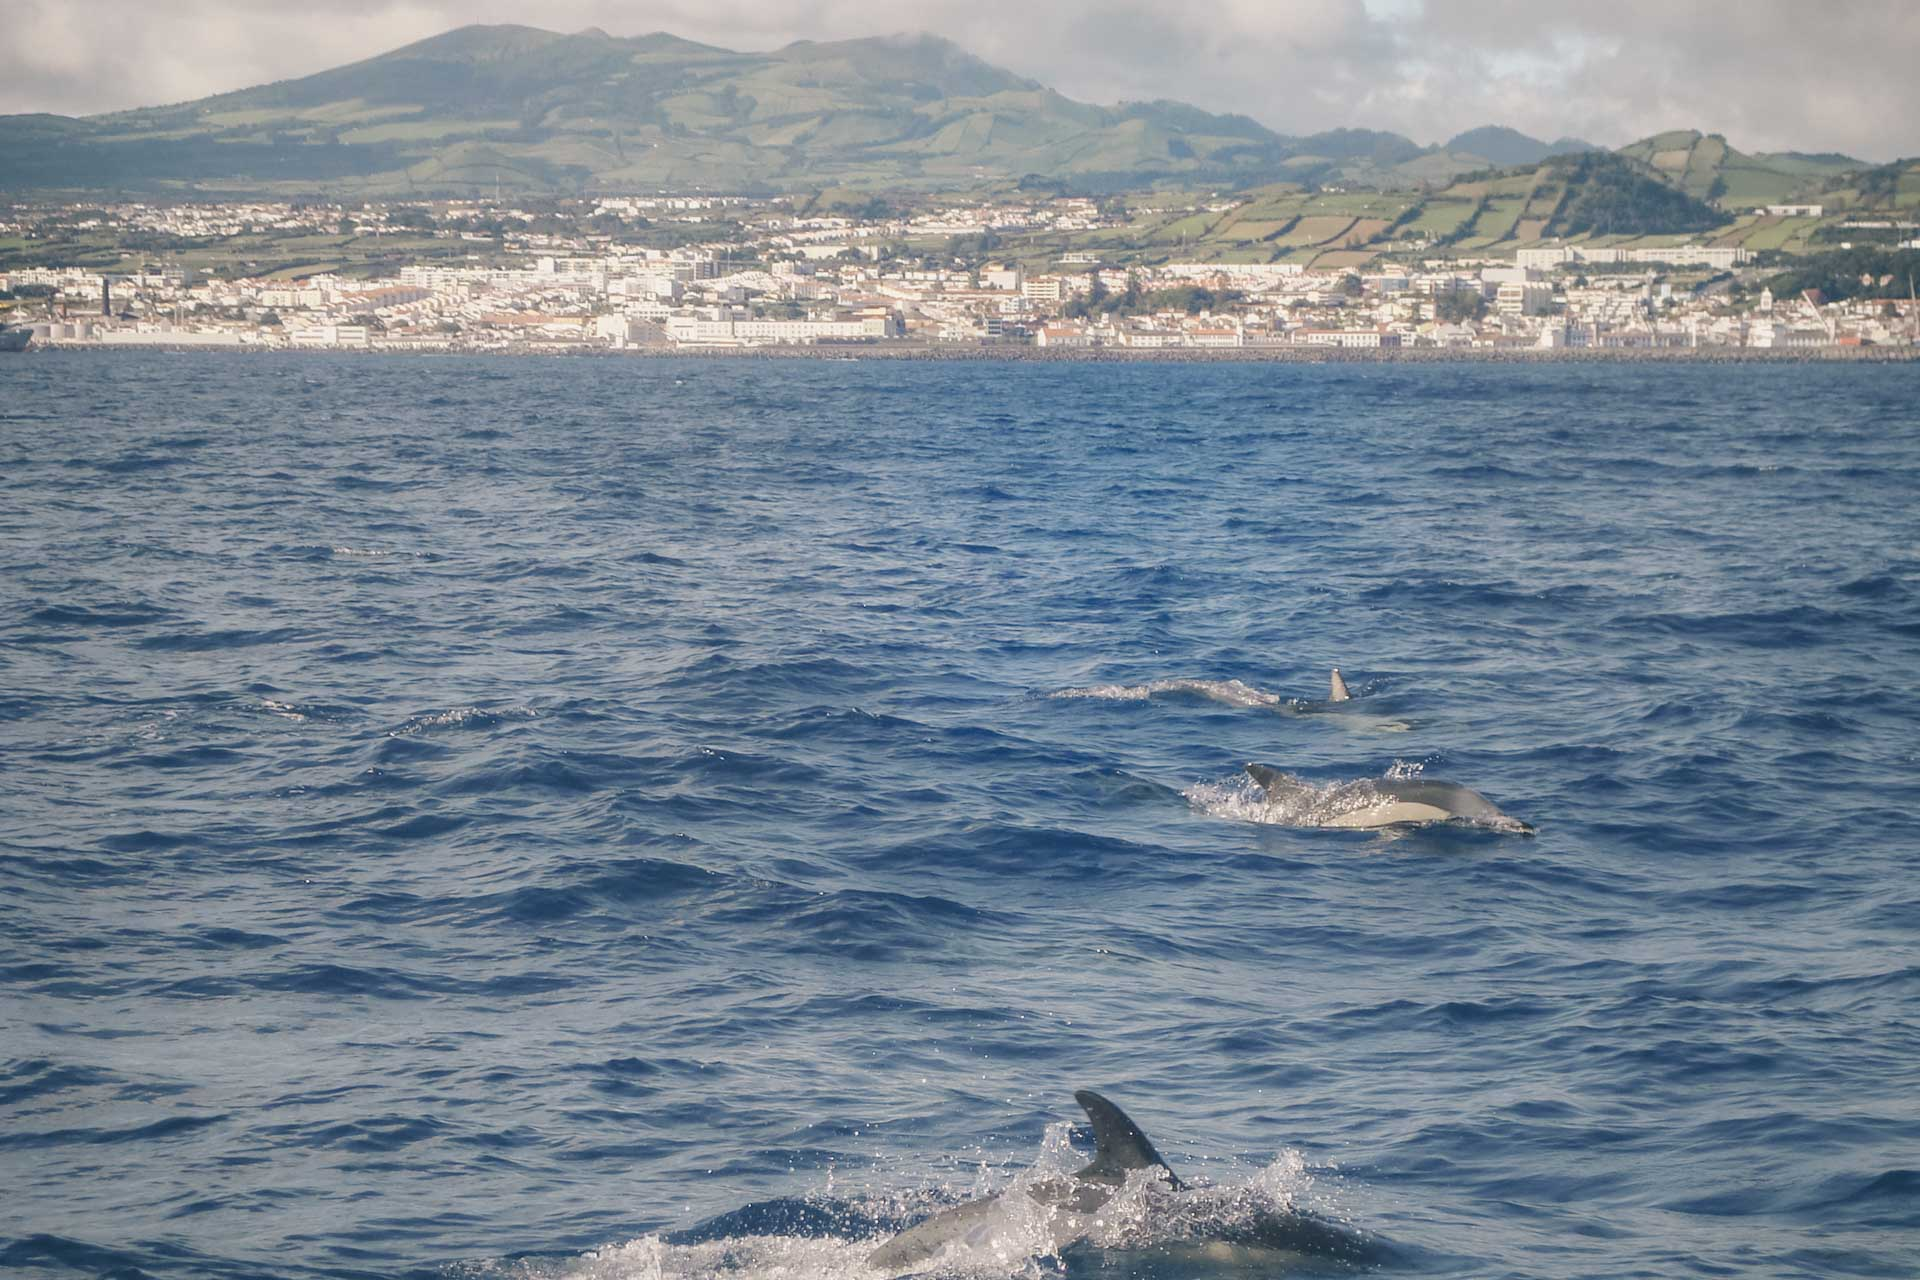 Dolphins Azores